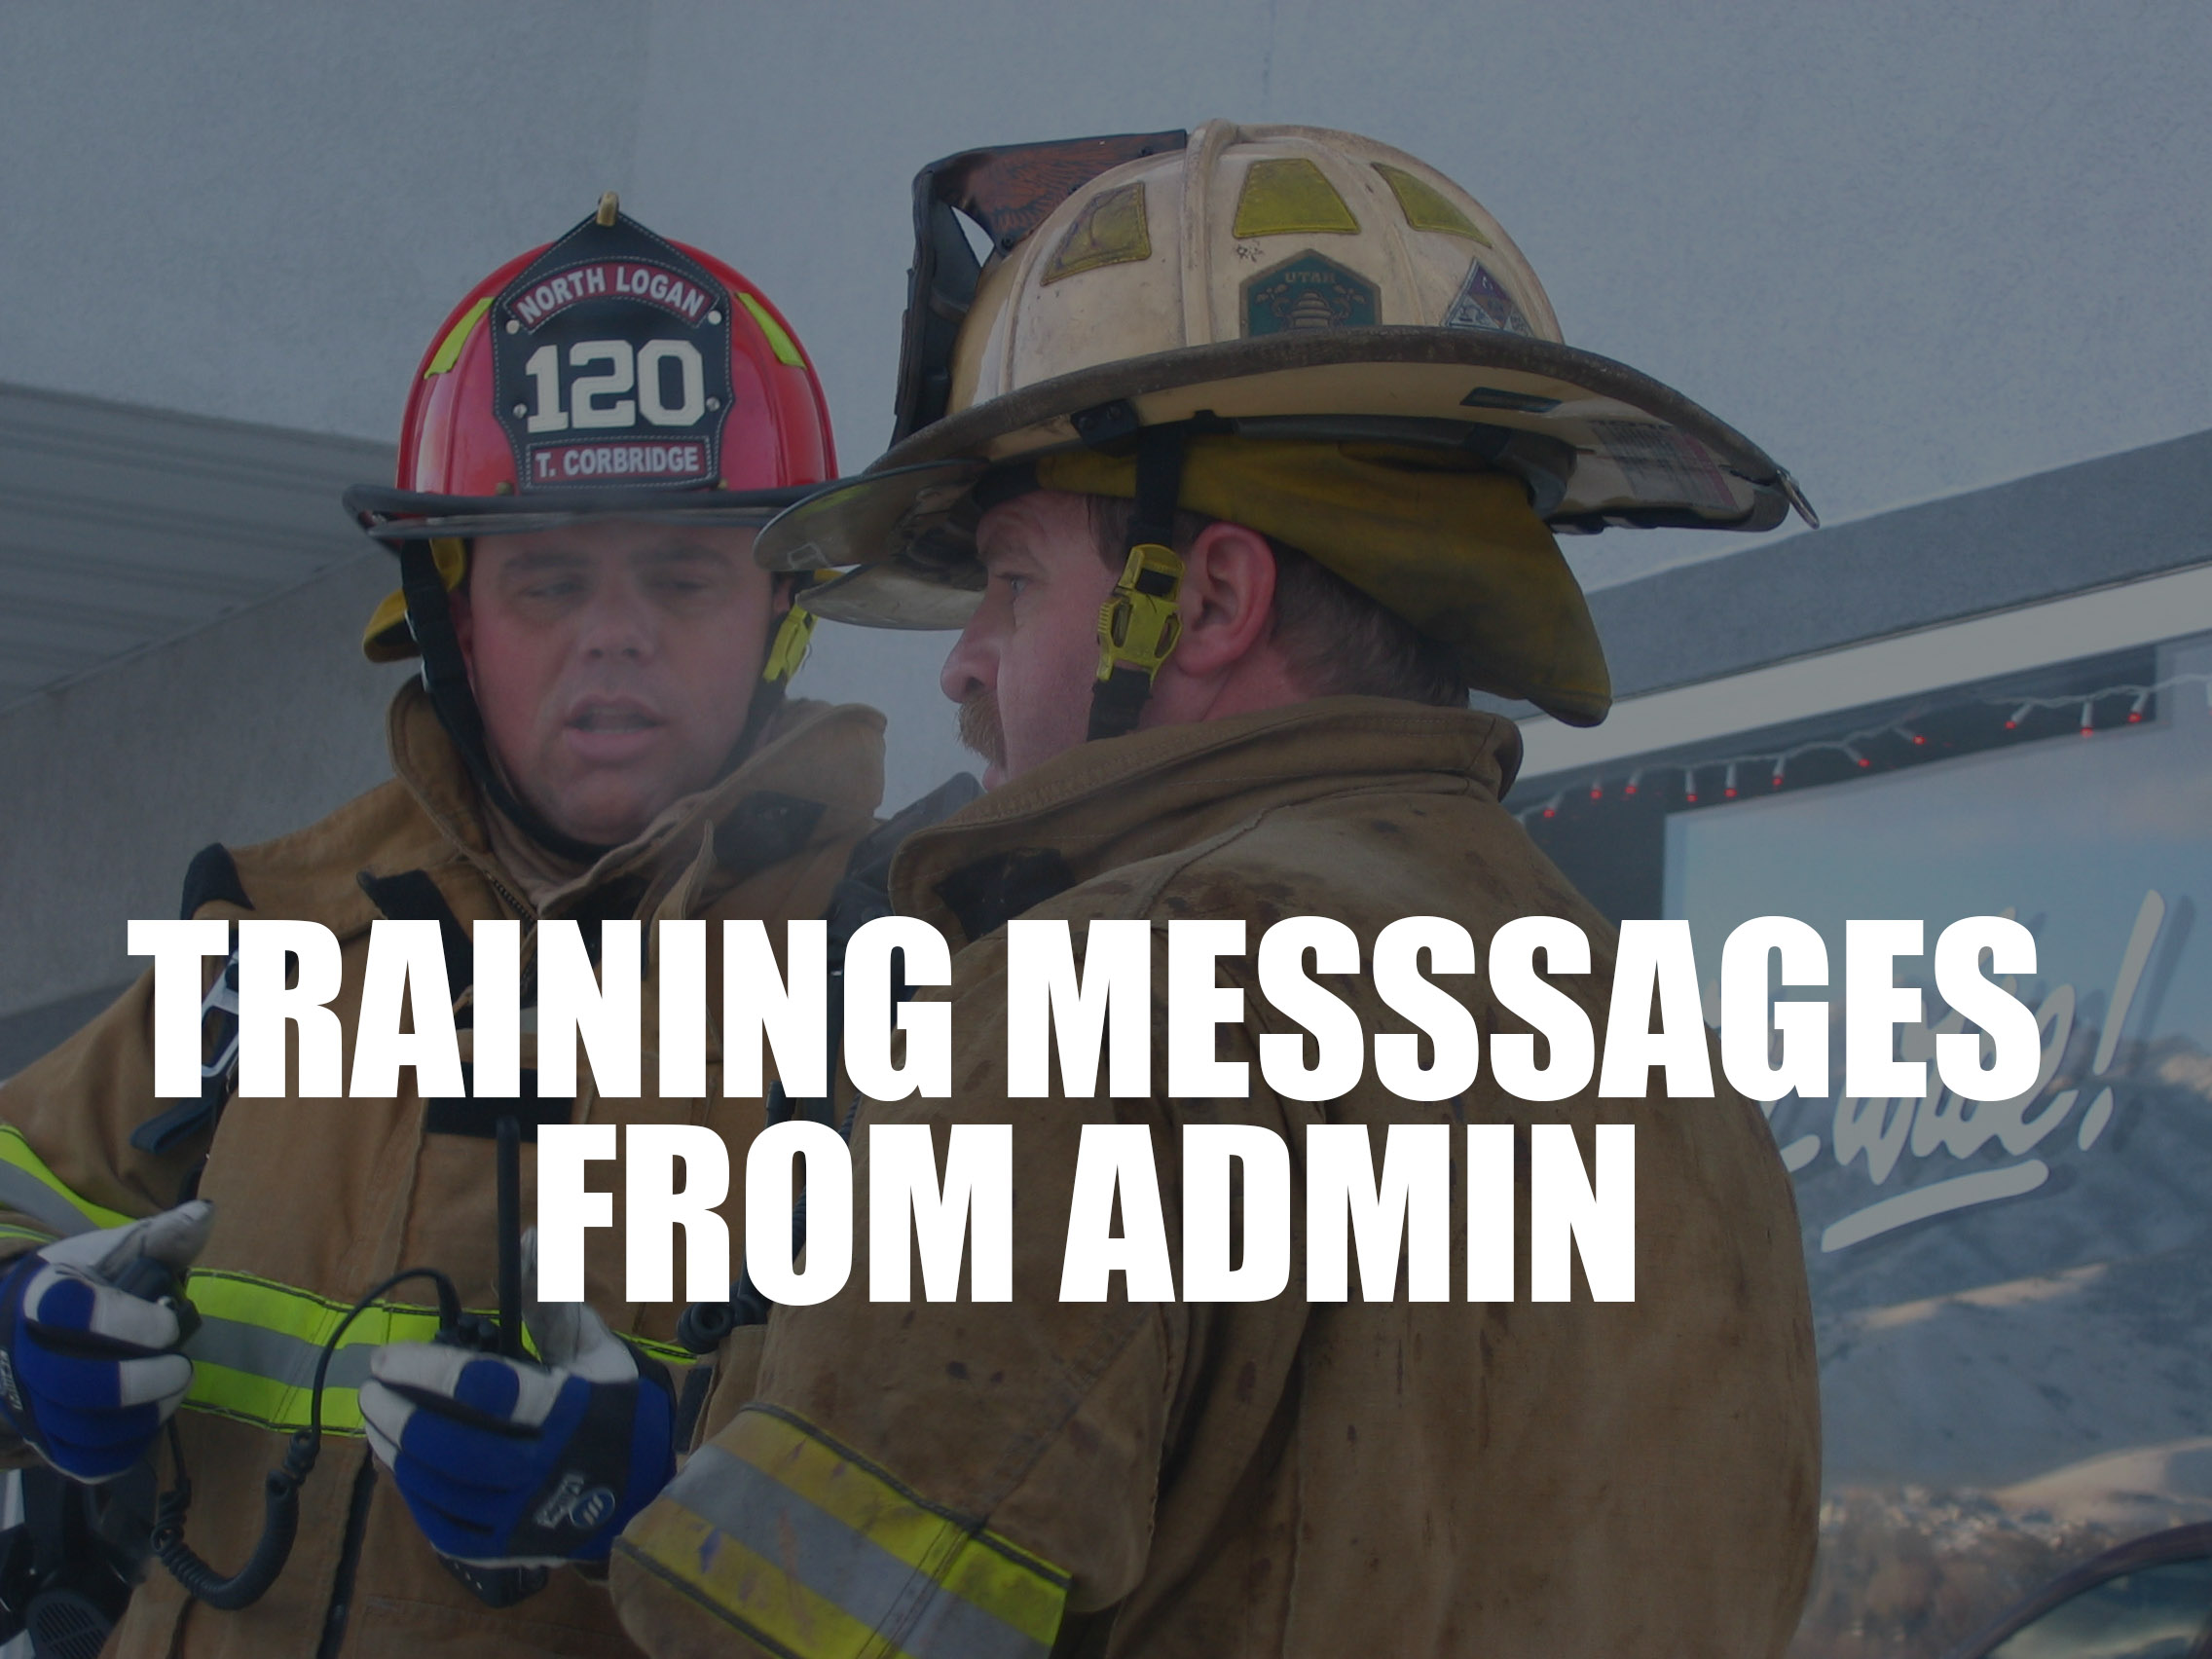 Click here for training messages written by those who know what they are talking about.